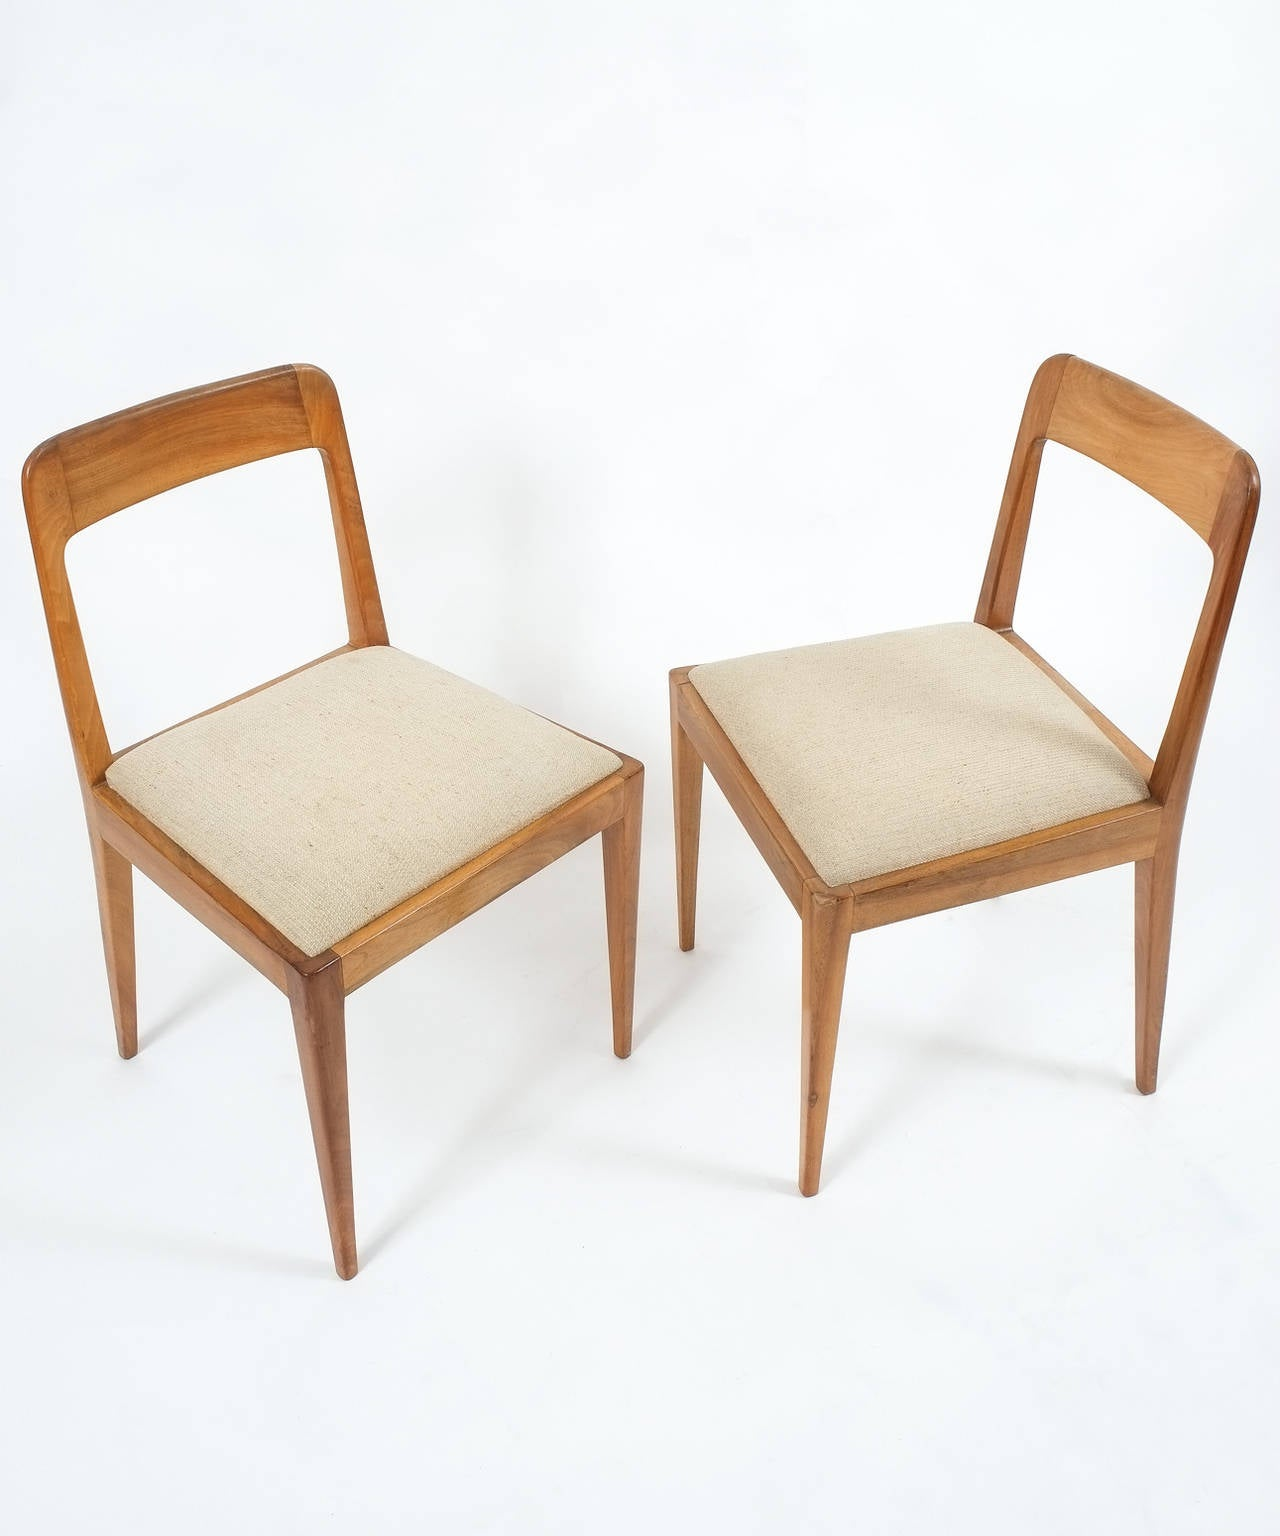 Set of Six Carl Auböck Wooden Chairs Mid-Century, 1950 For Sale 1